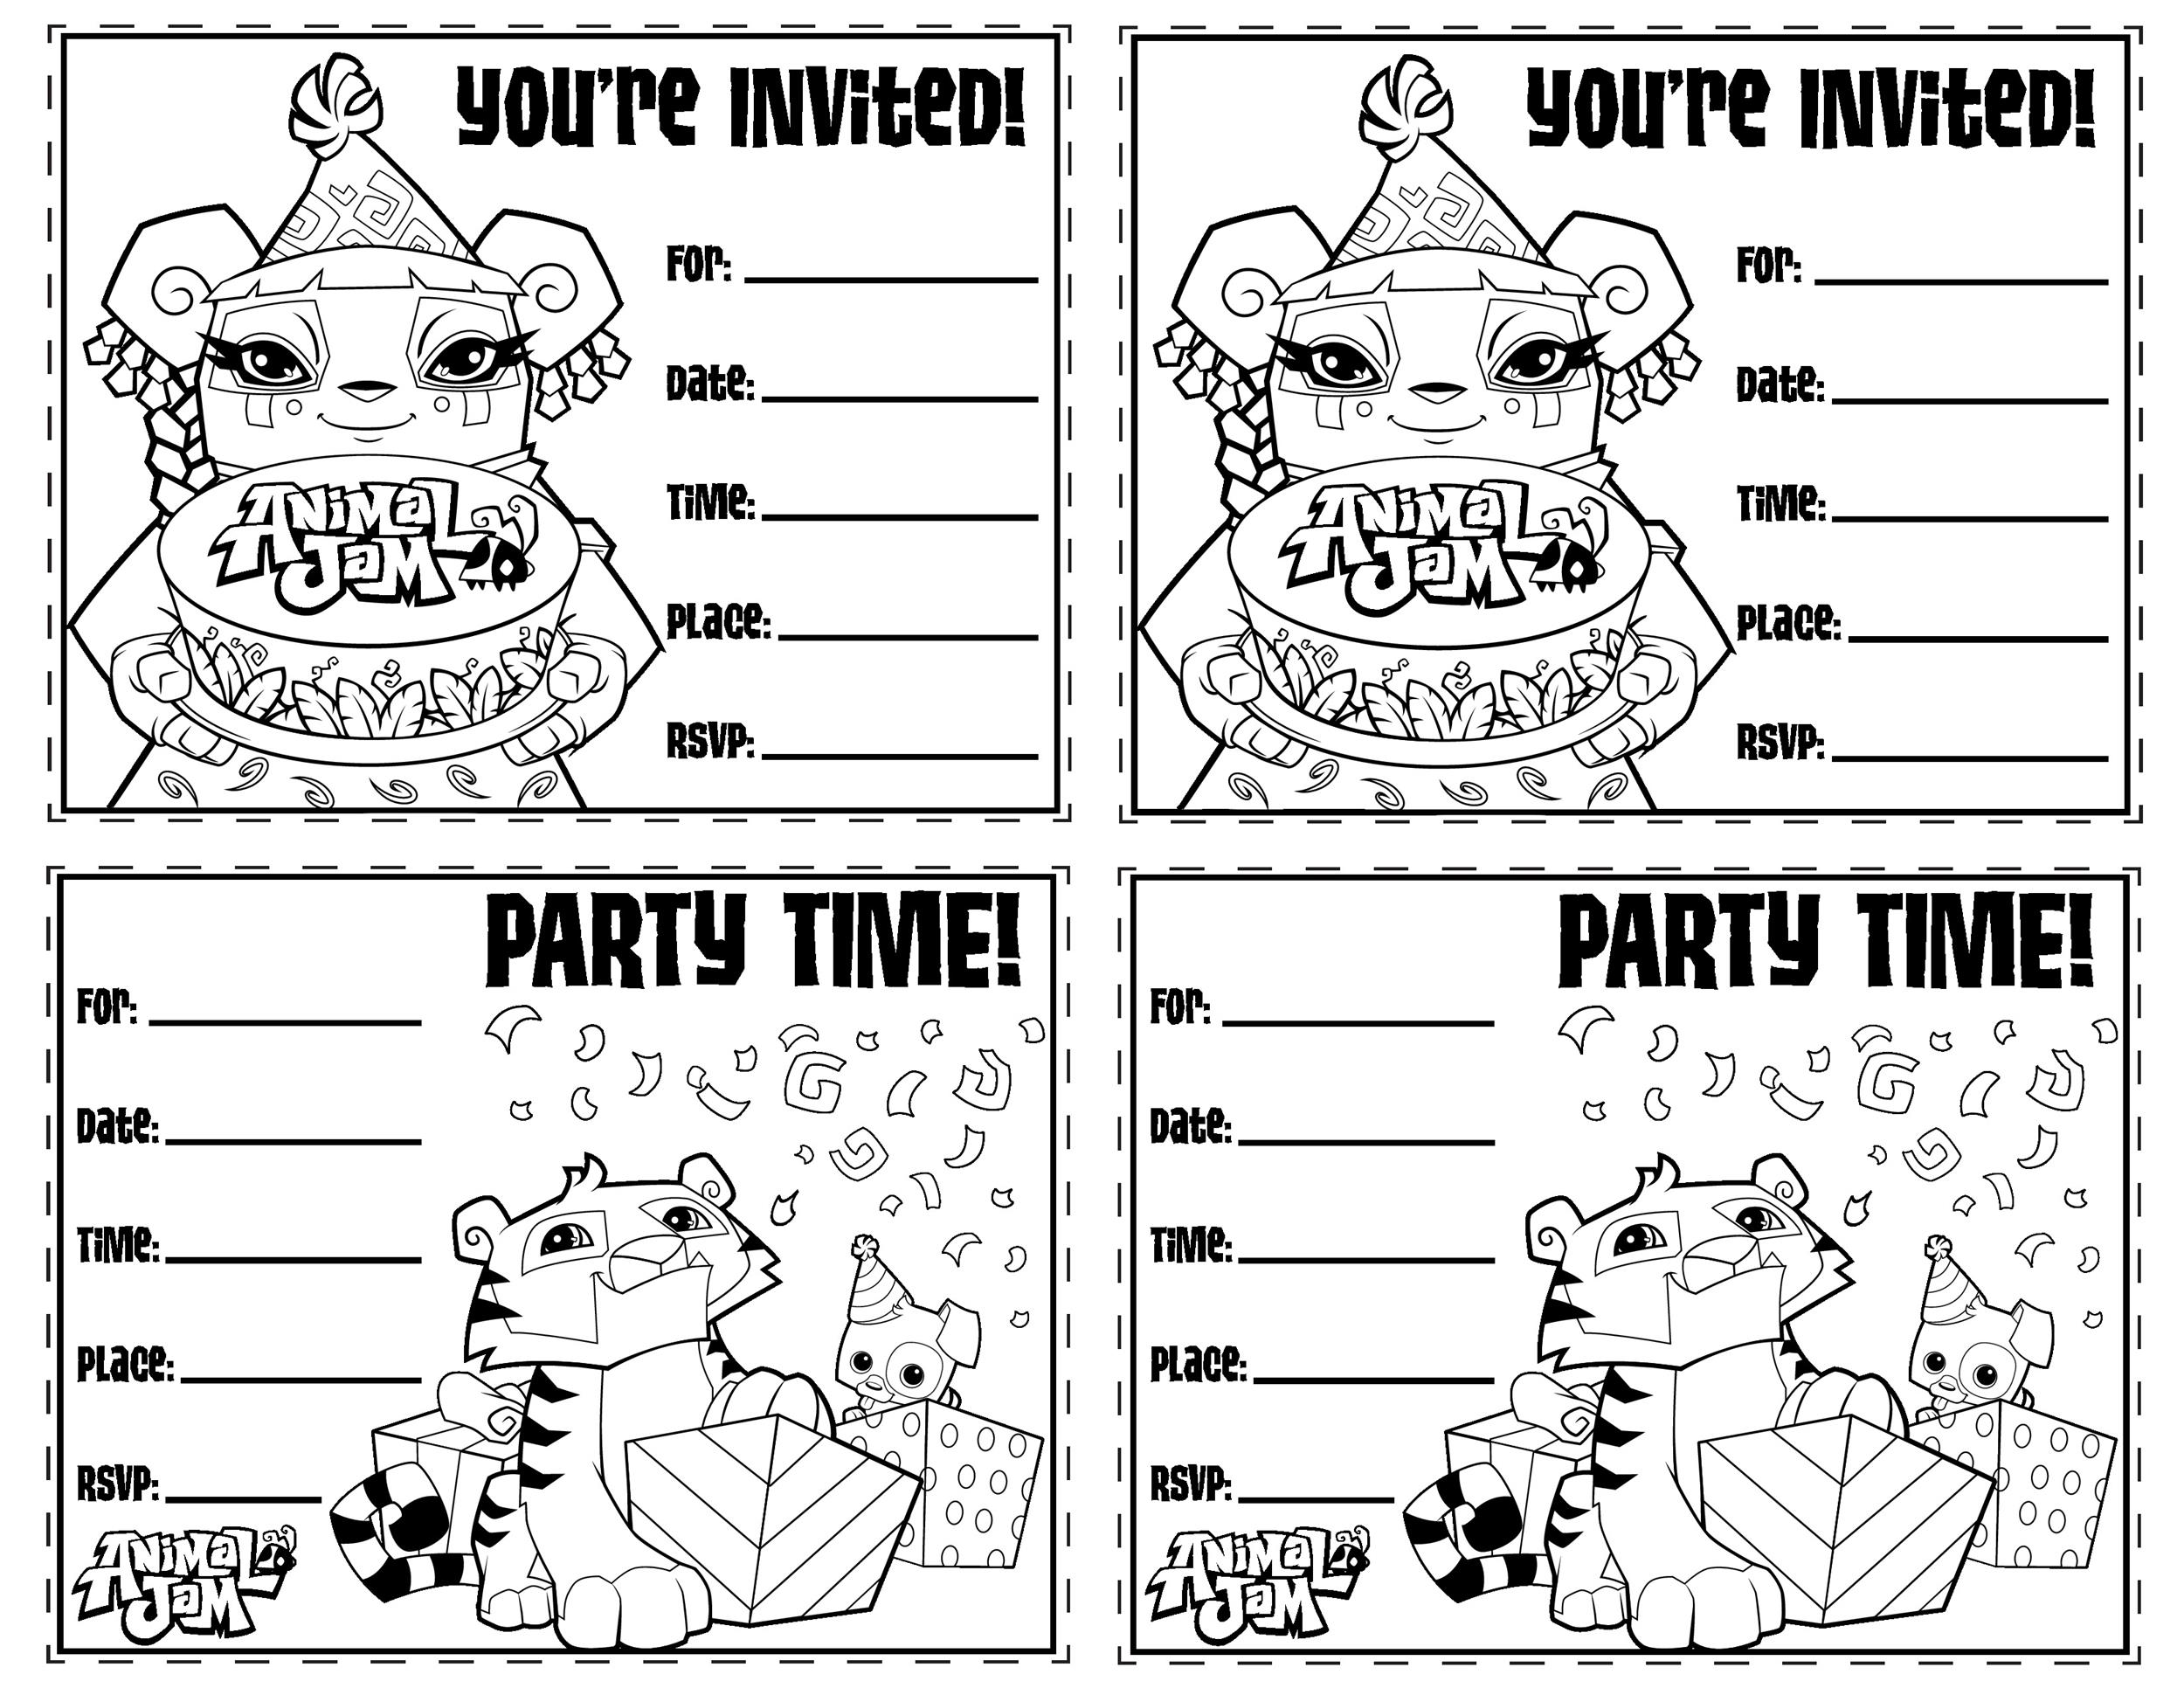 40+ Free Birthday Party Invitation Templates - Template Lab - invitation birthday template